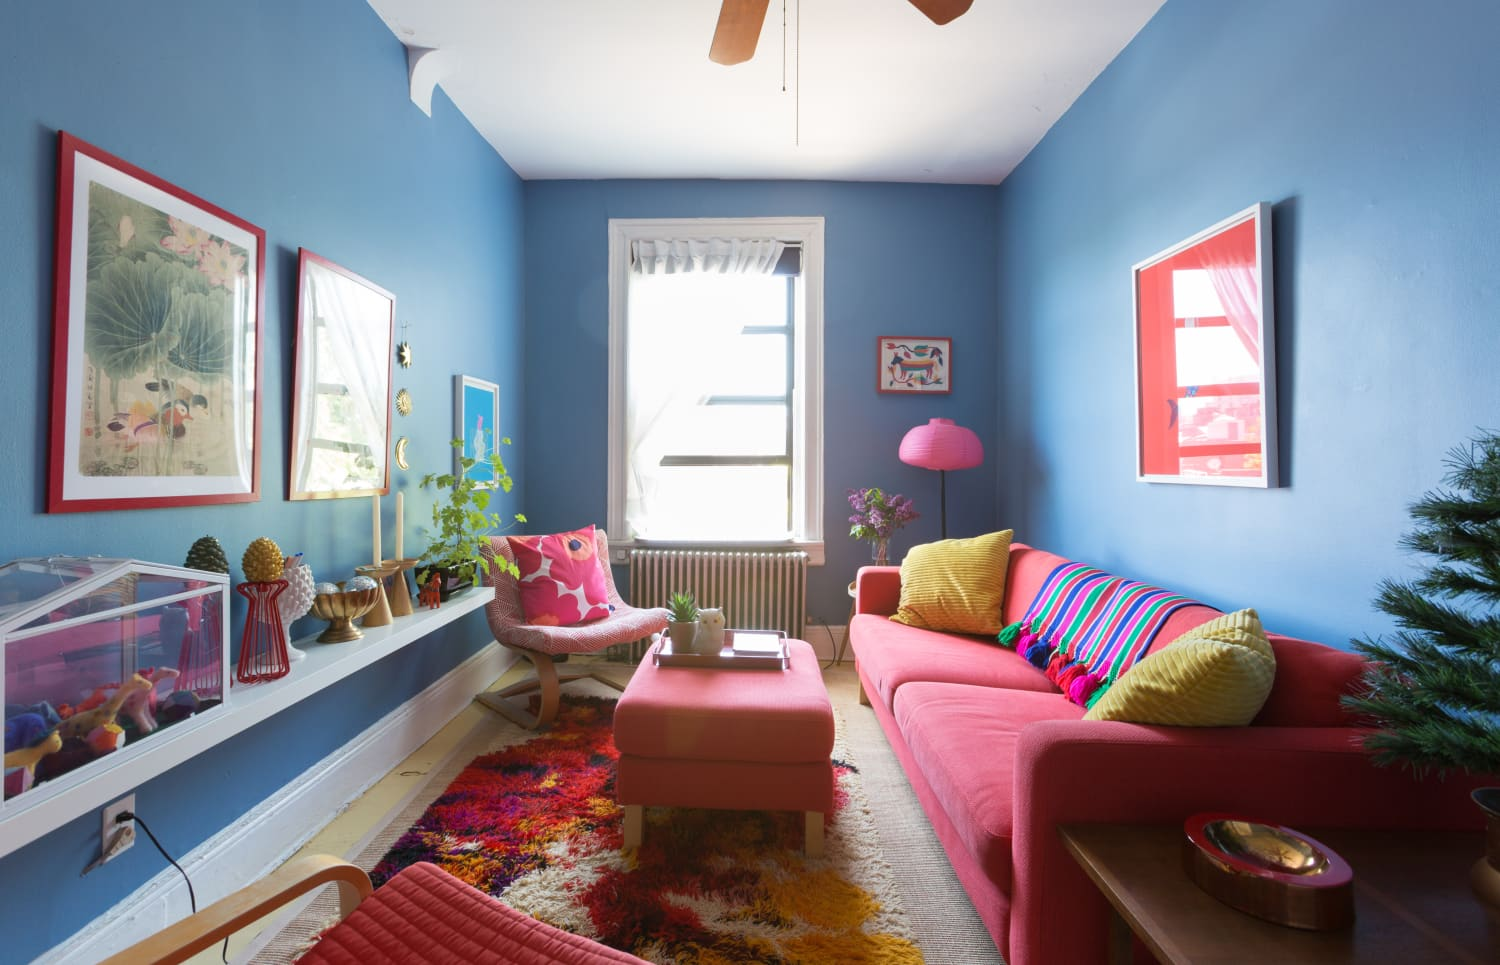 7 Paint Tricks that Make Small Spaces Look Larger, According to Designers